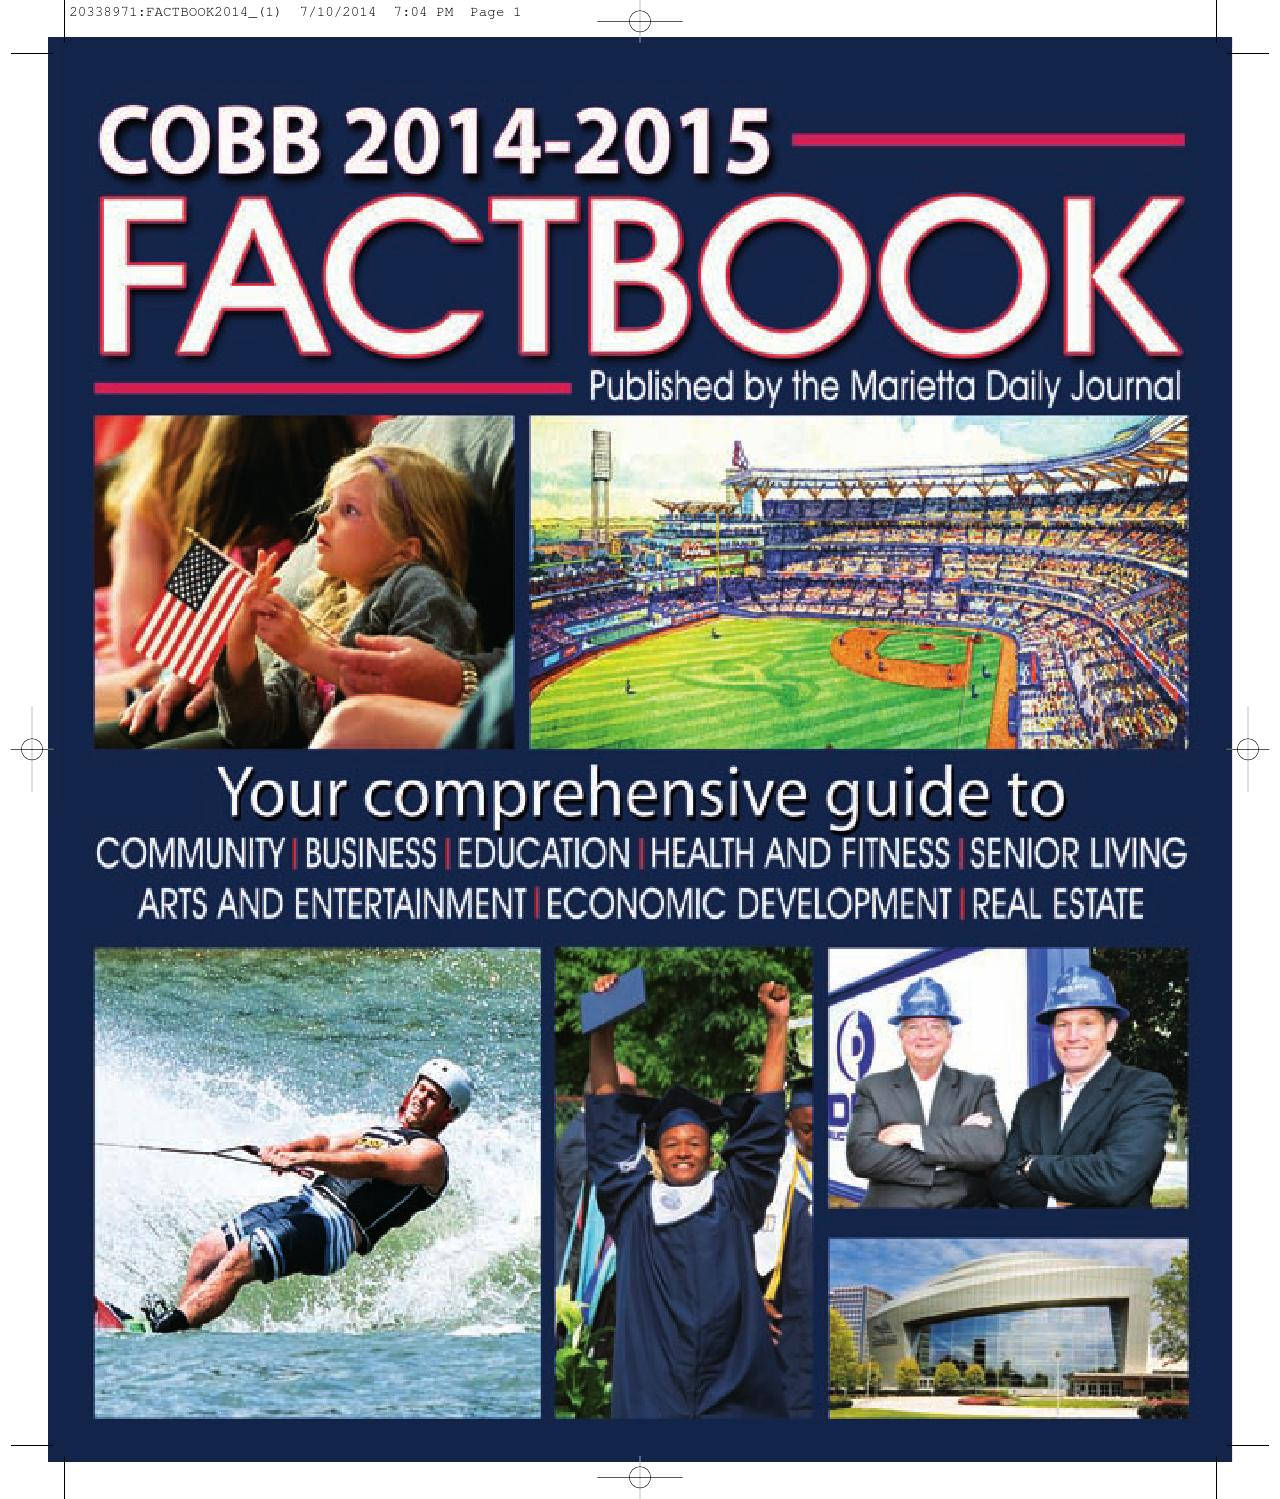 2014 15 cobb factbook by otis brumby iii issuu 1betcityfo Images